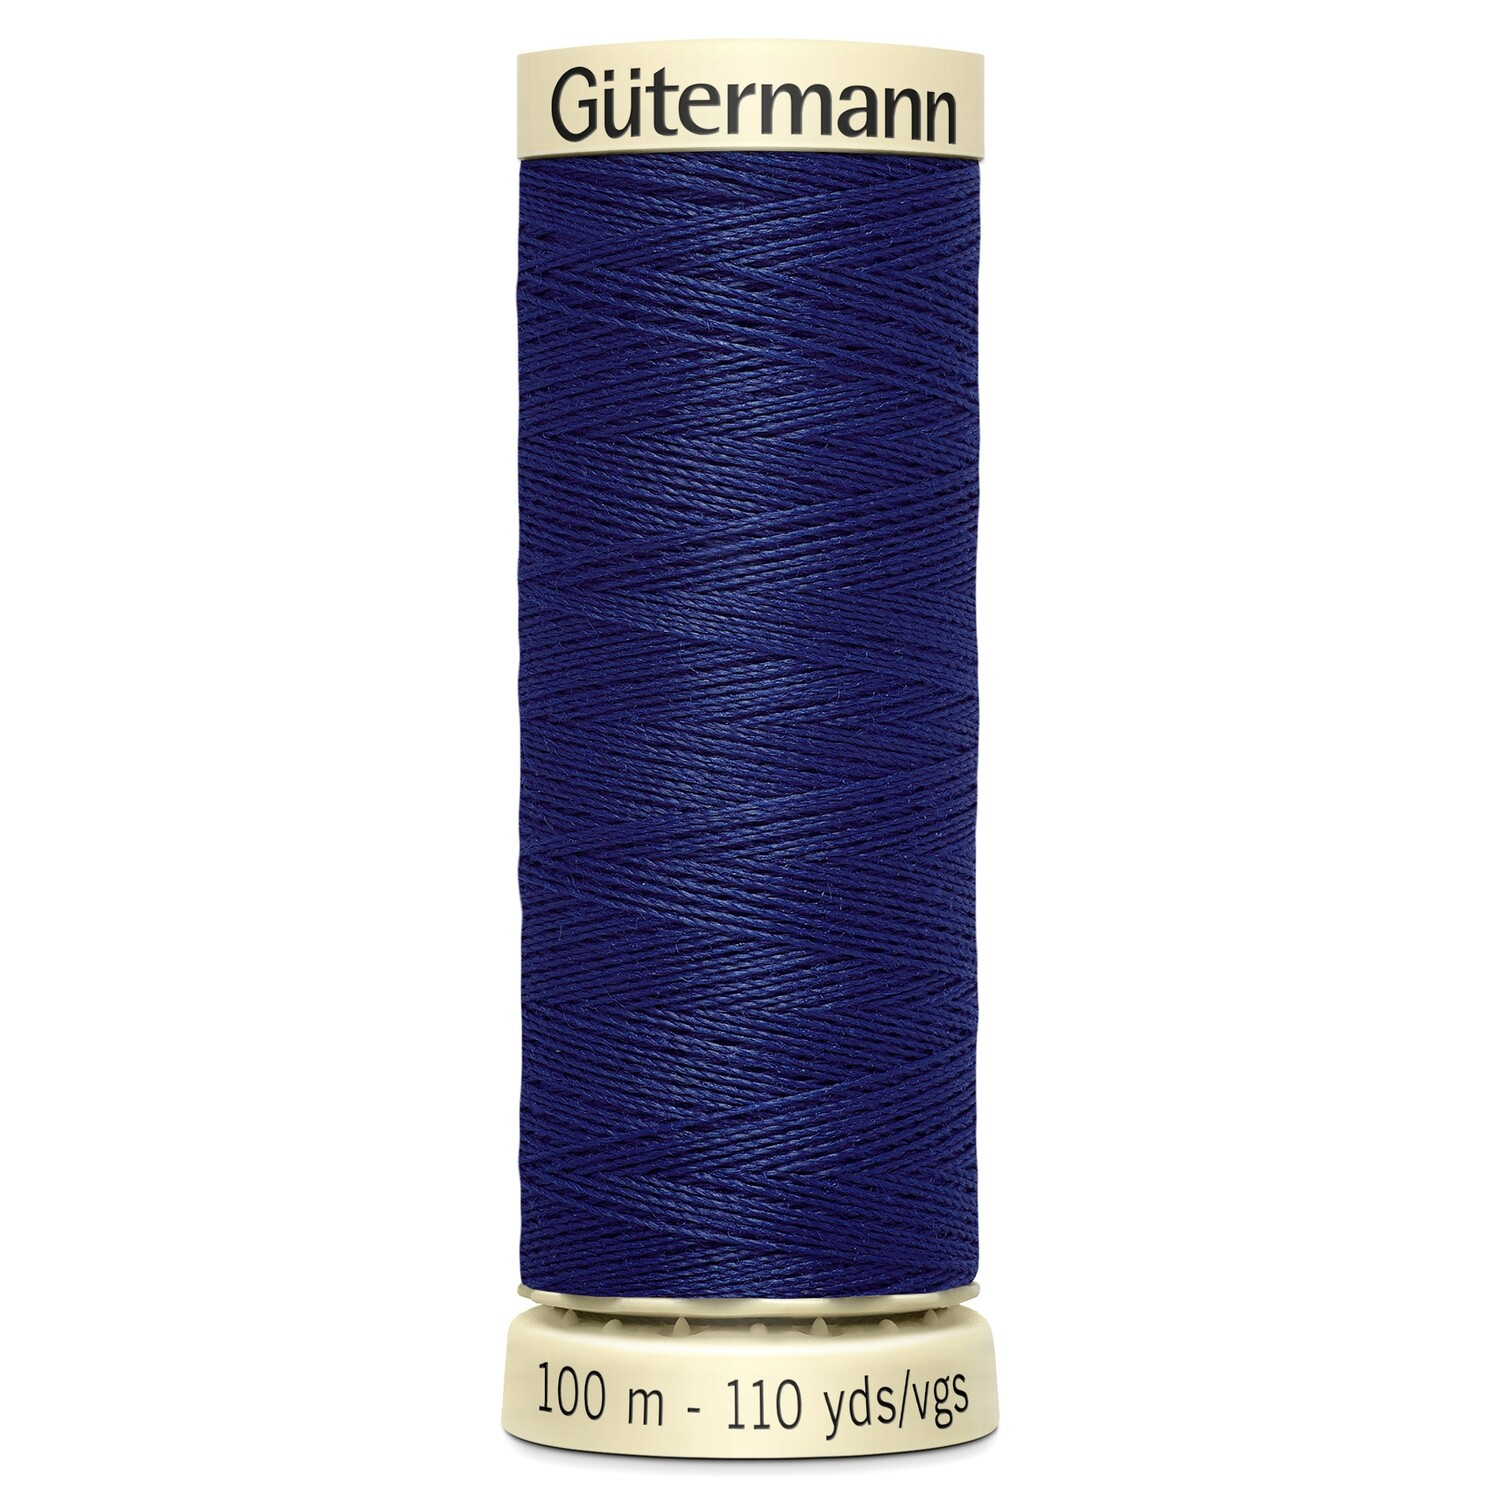 Gutermann Sew-All thread 309